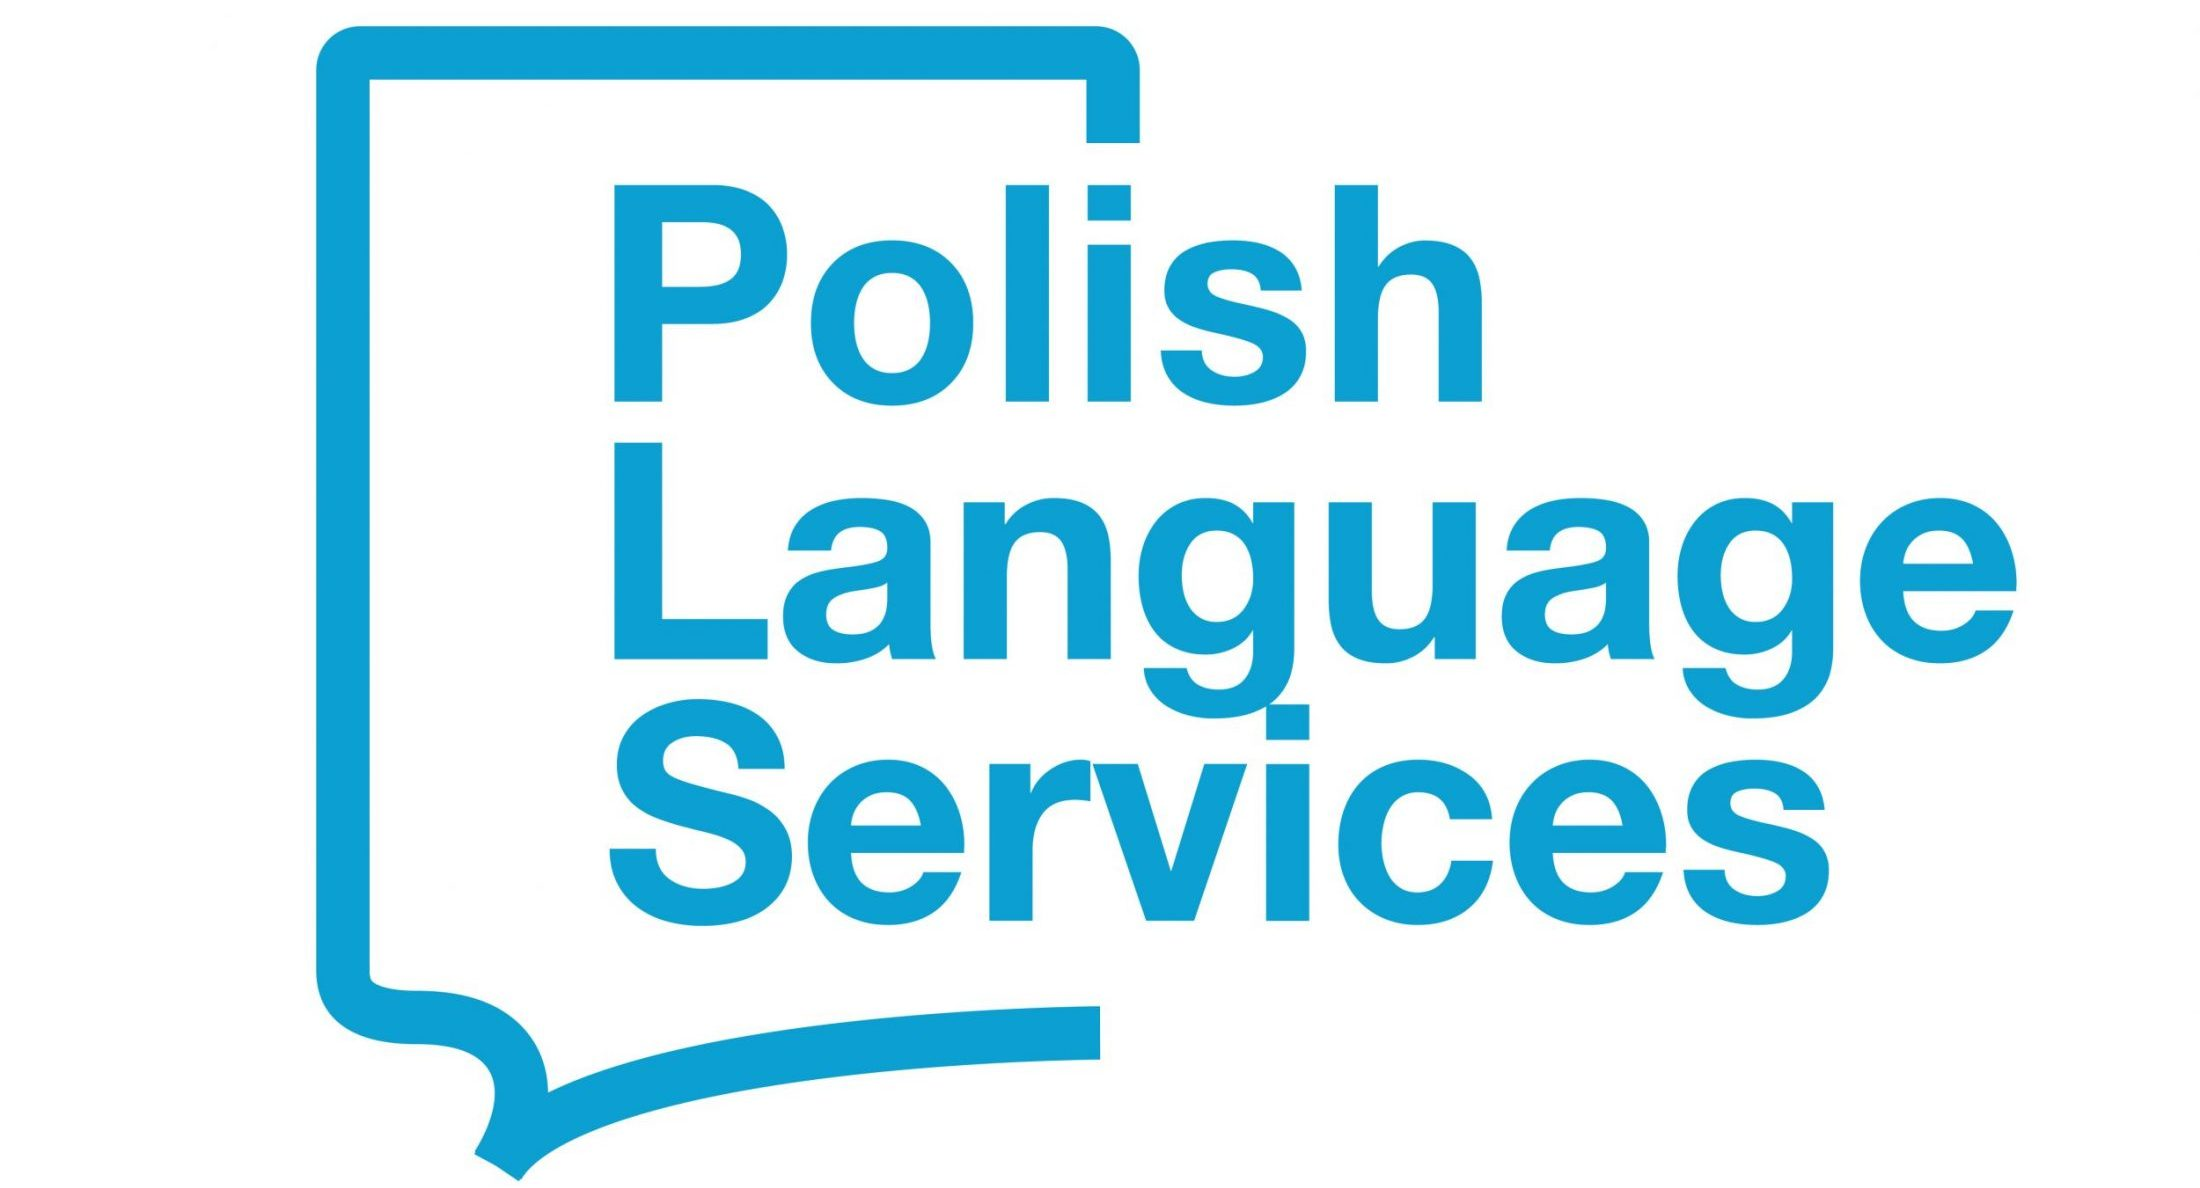 Polish Language Services